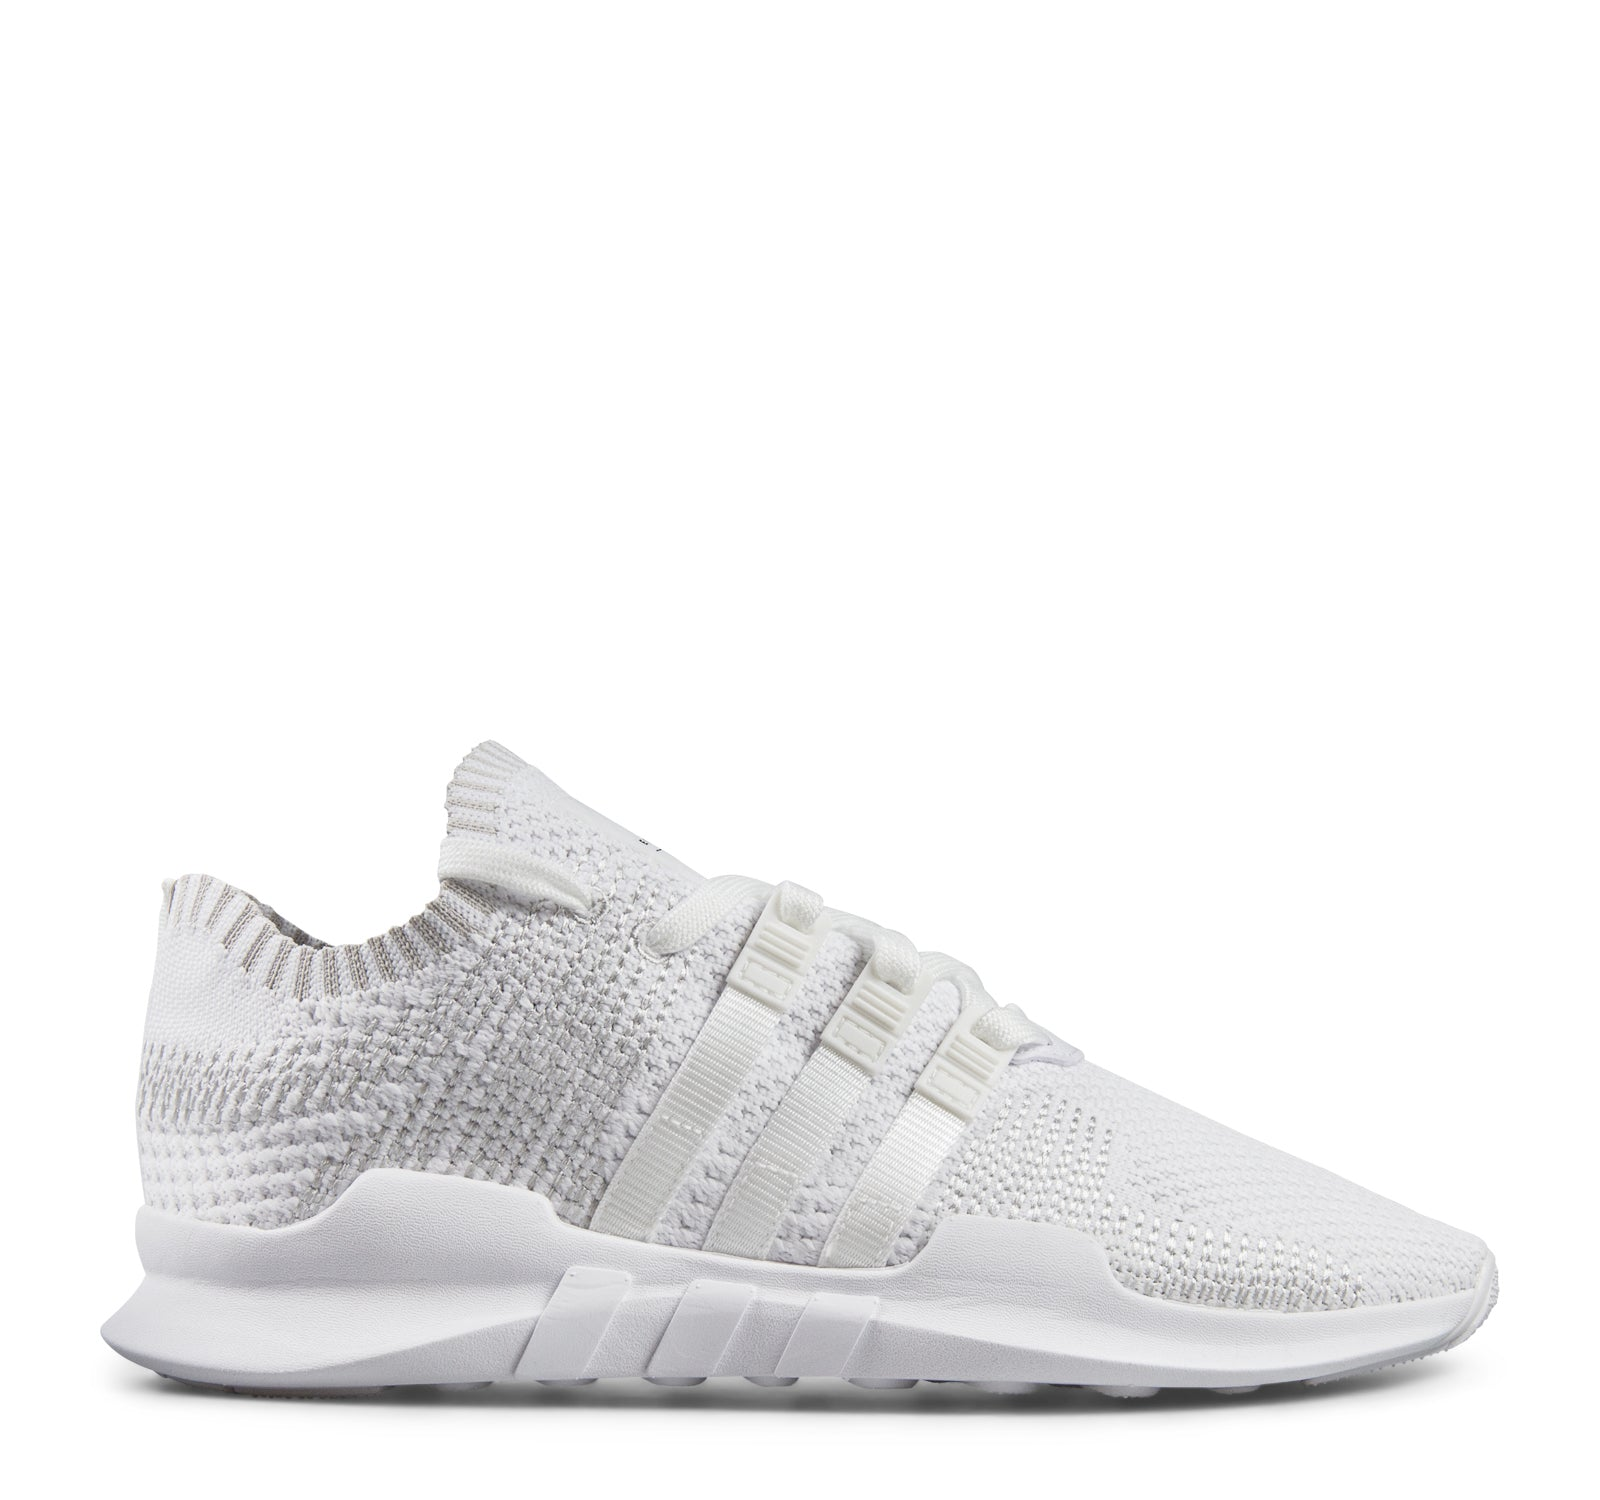 Adidas EQT Support ADV PK BY9391 Men's Sneaker in White - Adidas - On The EDGE